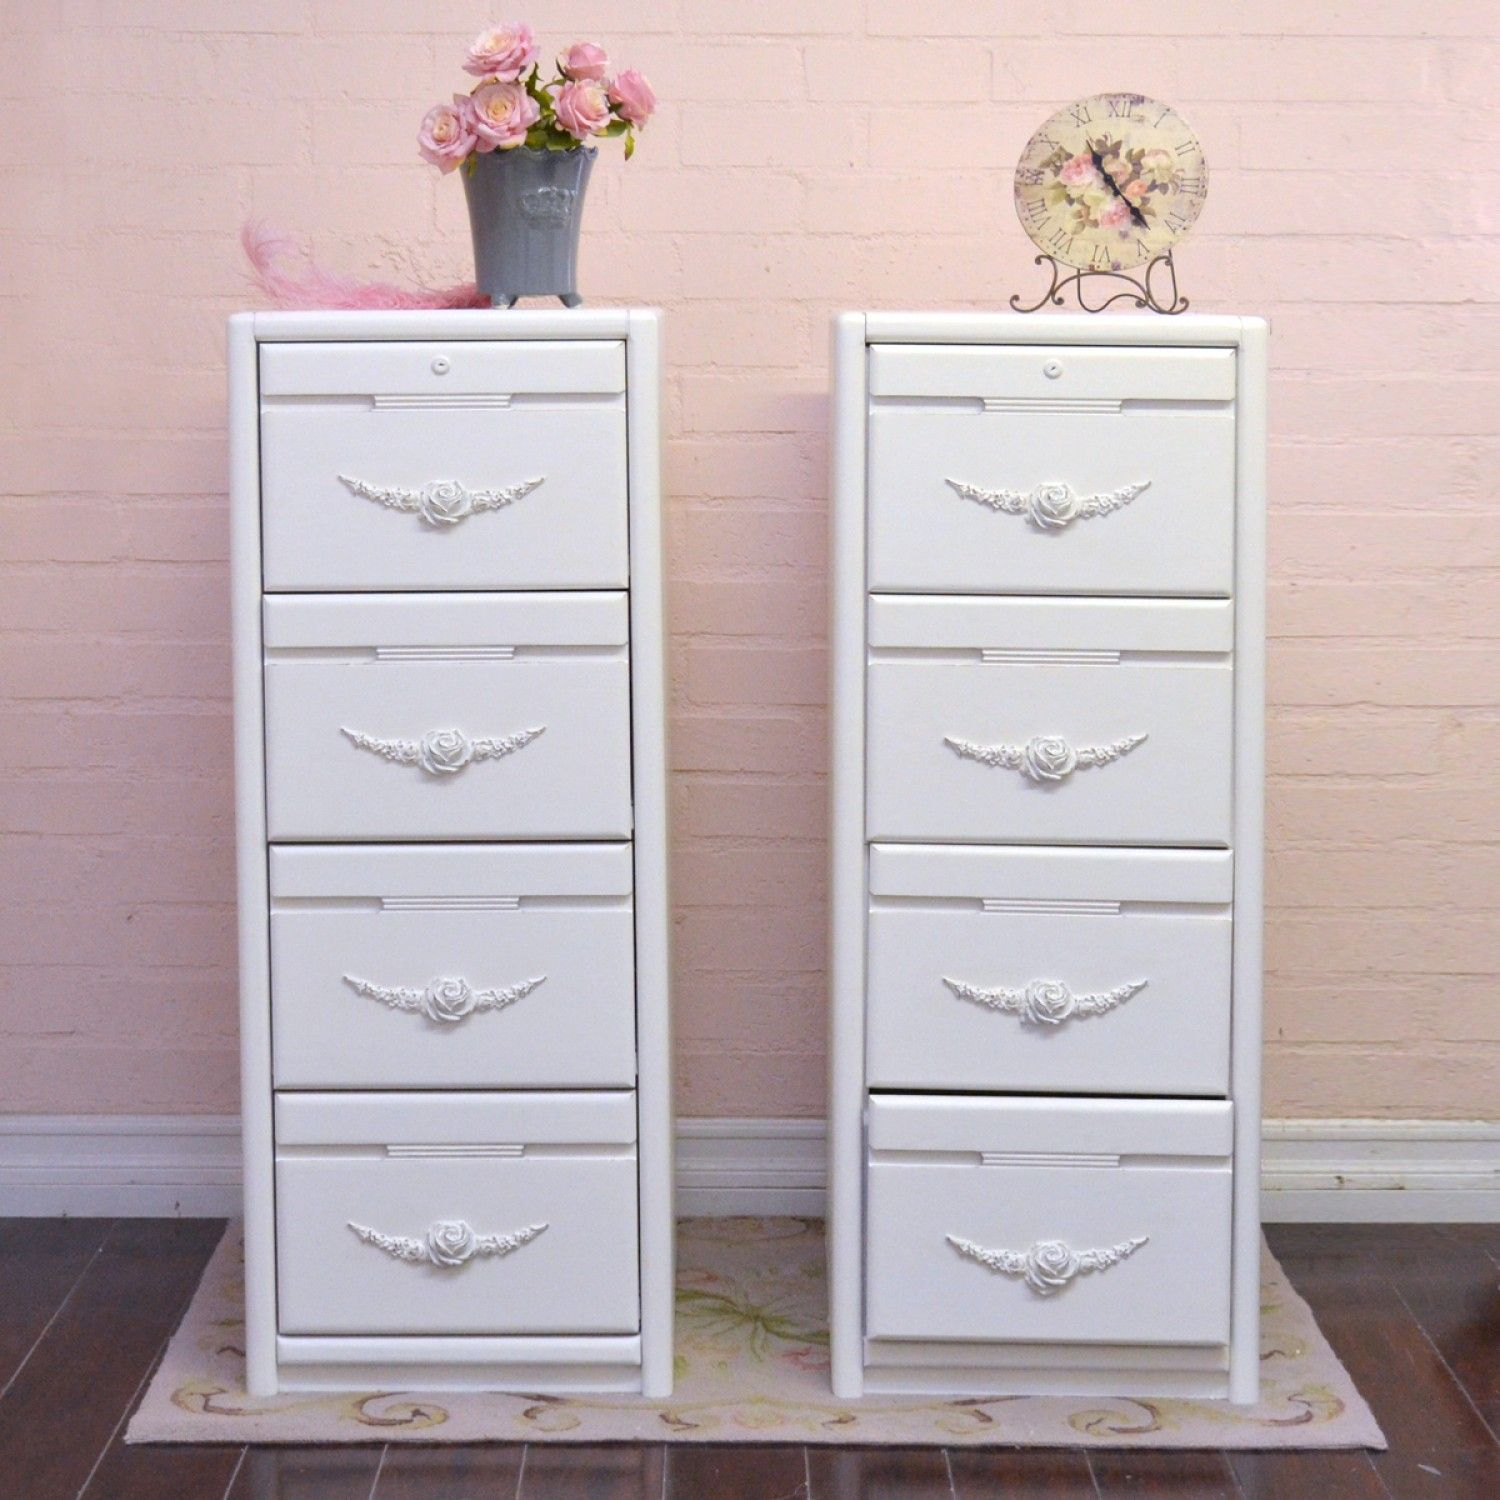 Single 4 Drawer Tall File White Cabinet Vintage Style Furniture Filing Cabinet Dressing Room Decor White 4 drawer filing cabinet